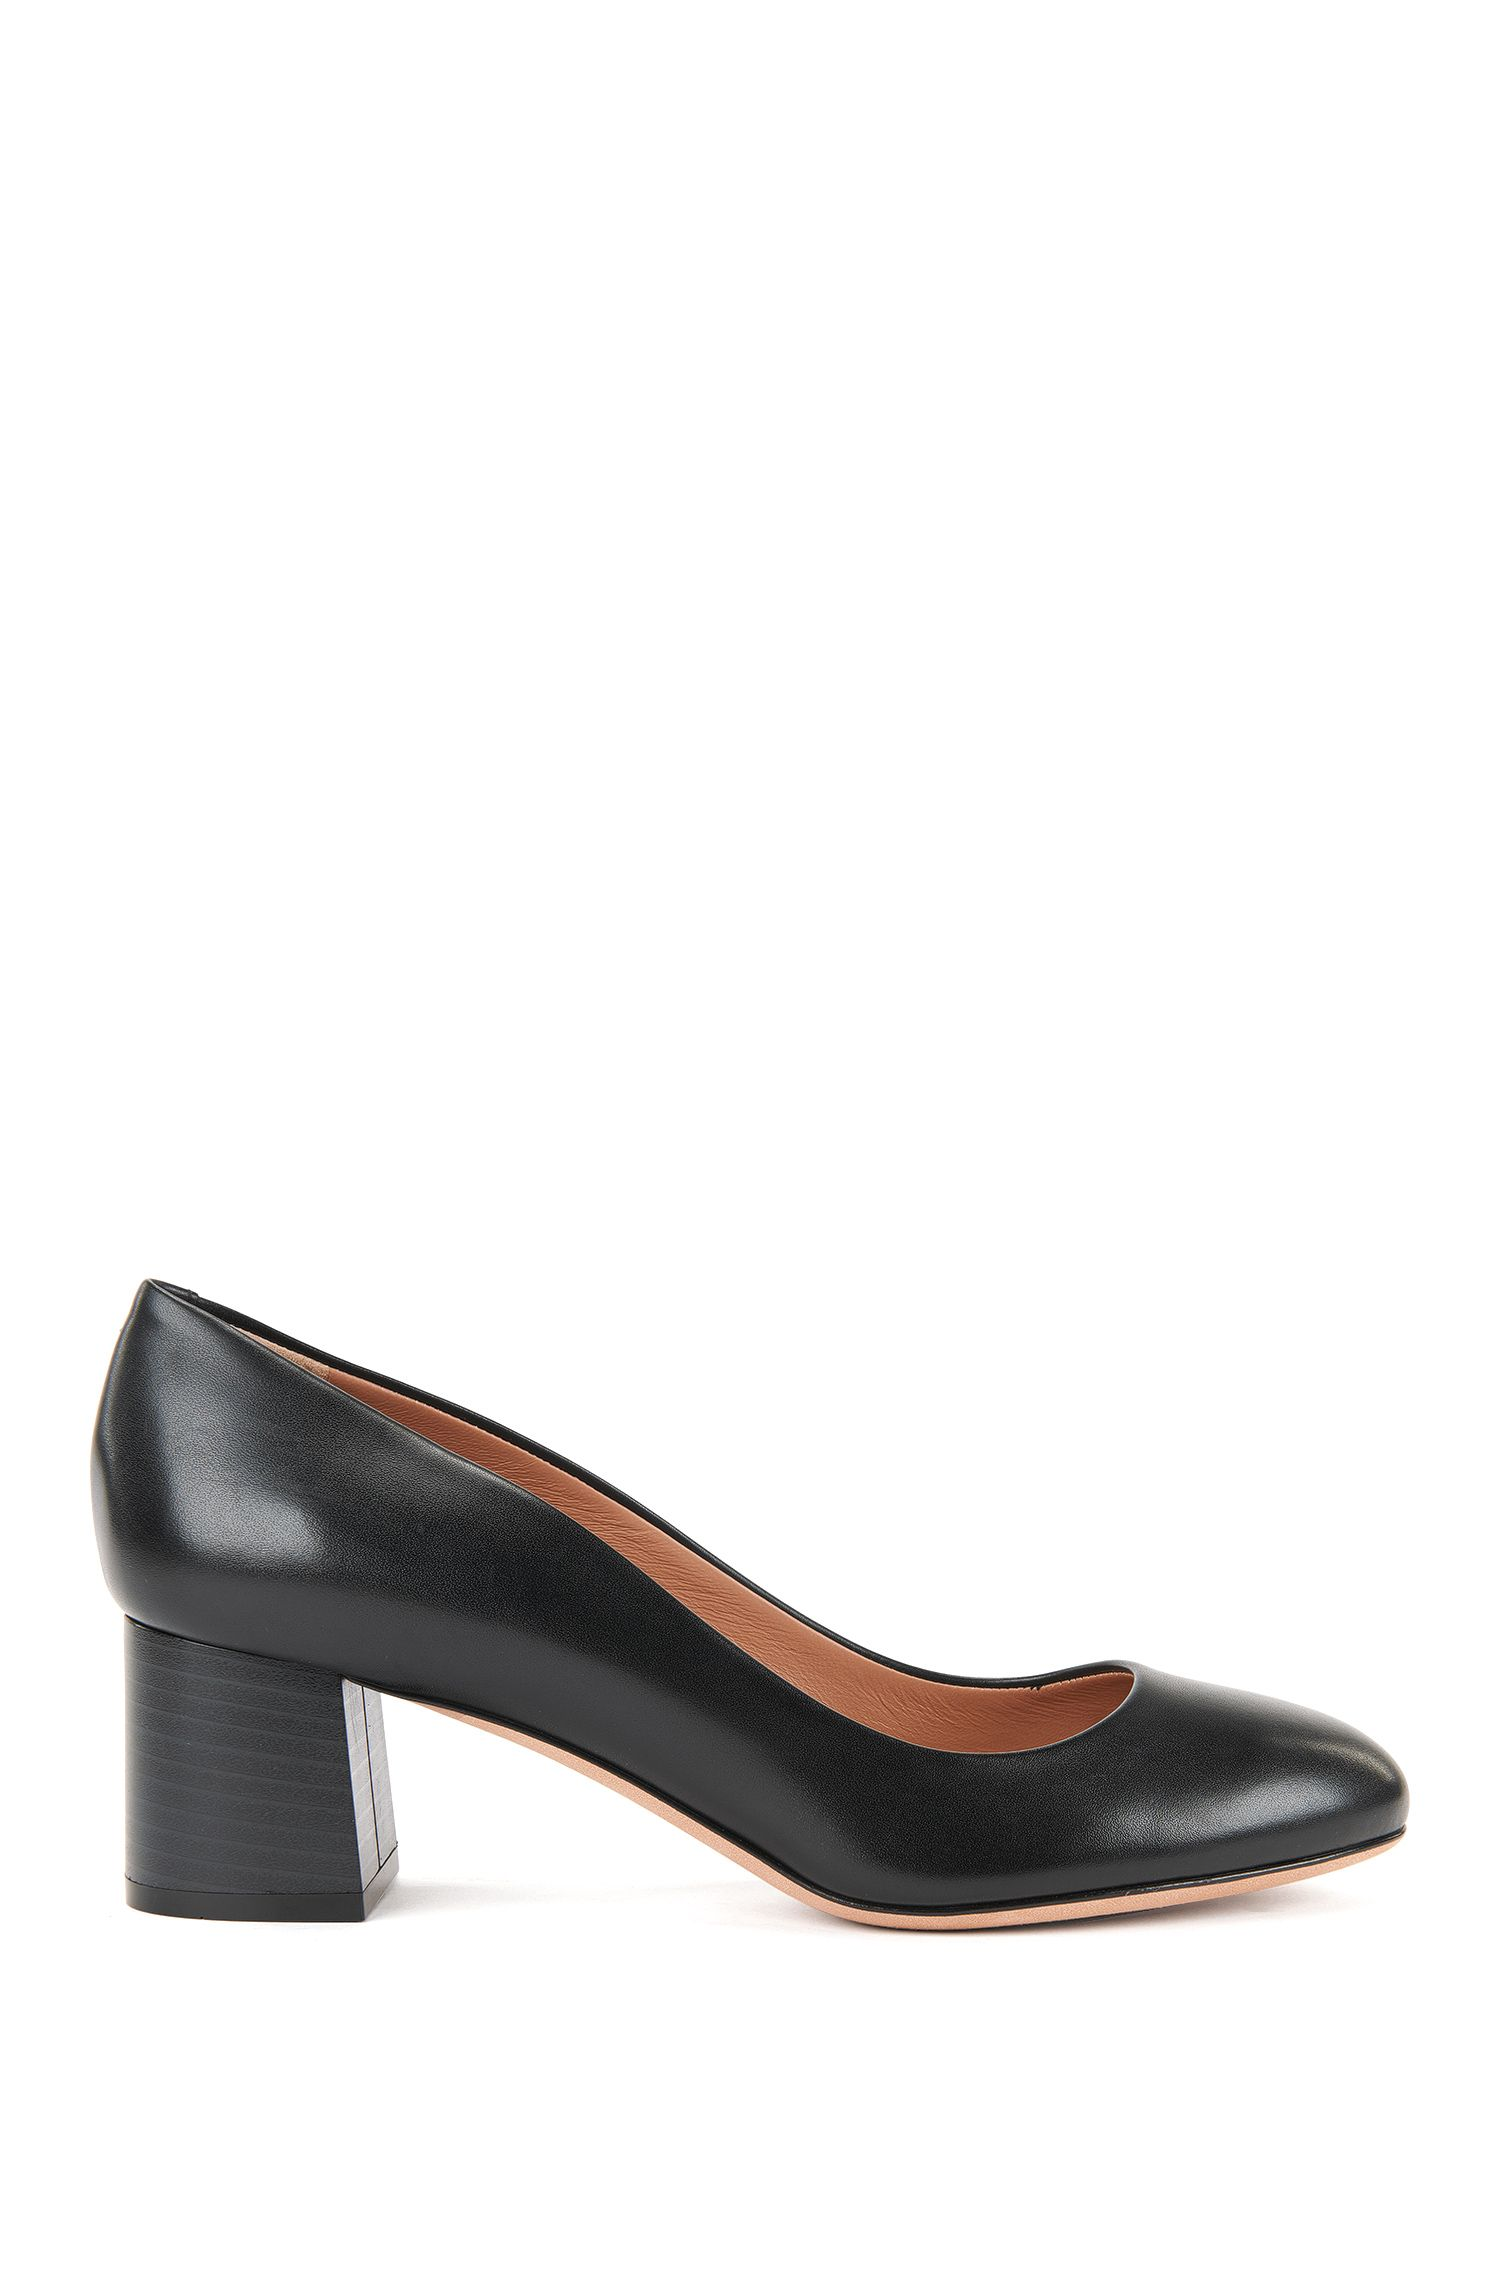 Leather Low-Heel Pump | Farah